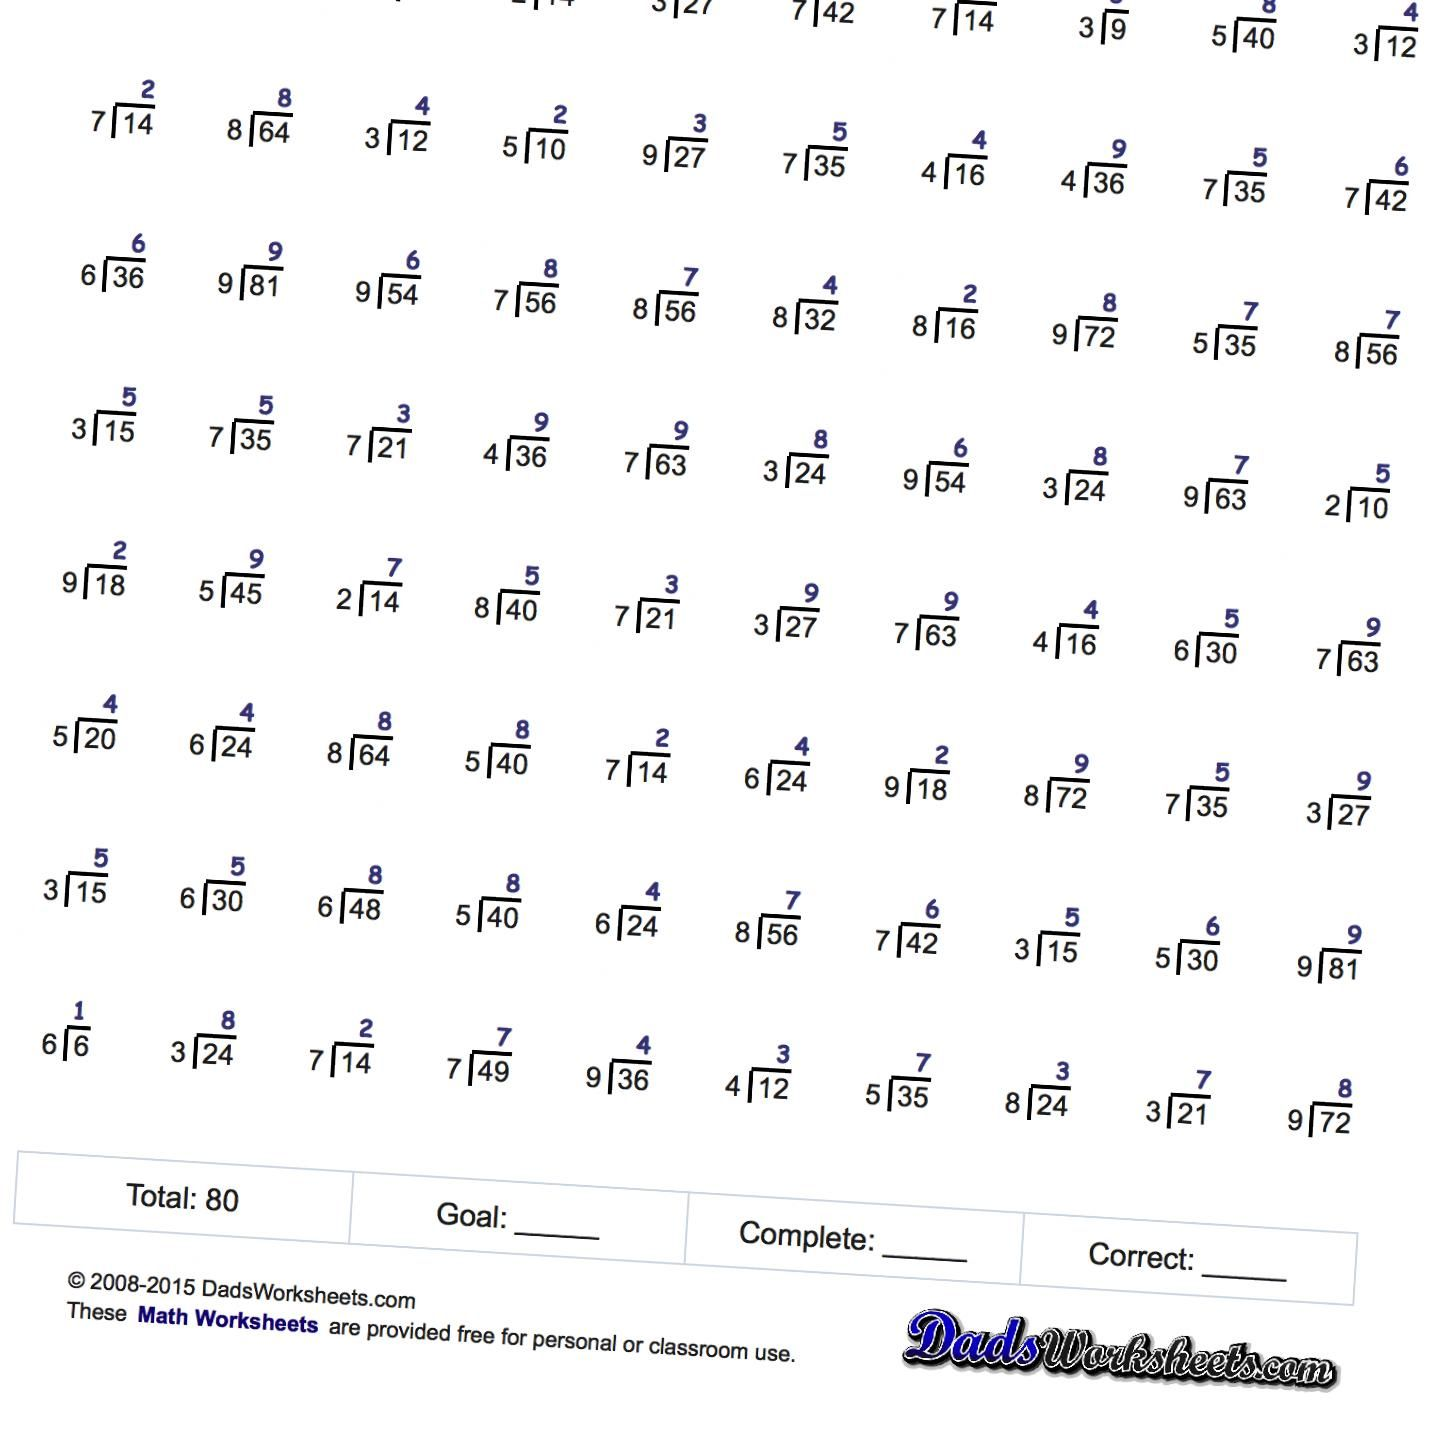 Worksheets Mad Minute Math Worksheets division worksheets just whole facts two minute tests education printable maths worksheetsmath